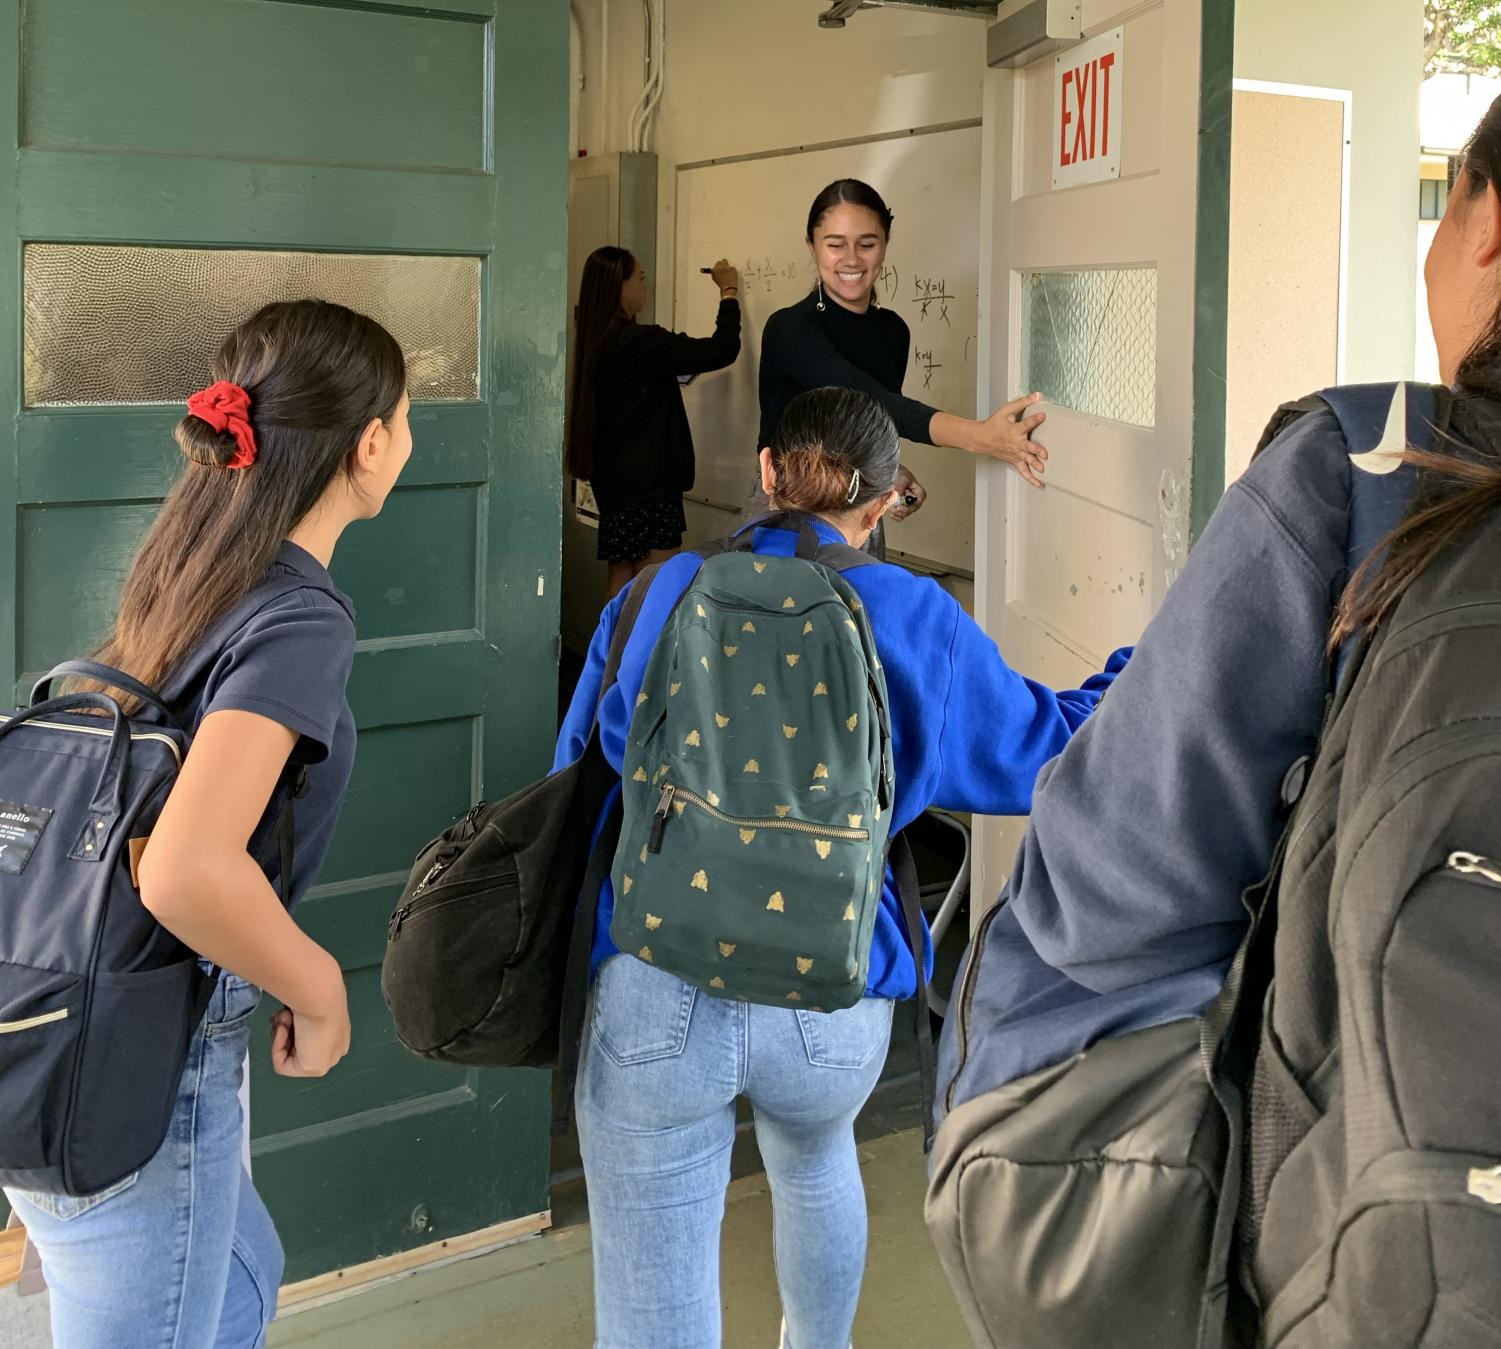 Junior Sarae Miguel opens the door and welcomes 8th graders to the Algebra 2 classroom.